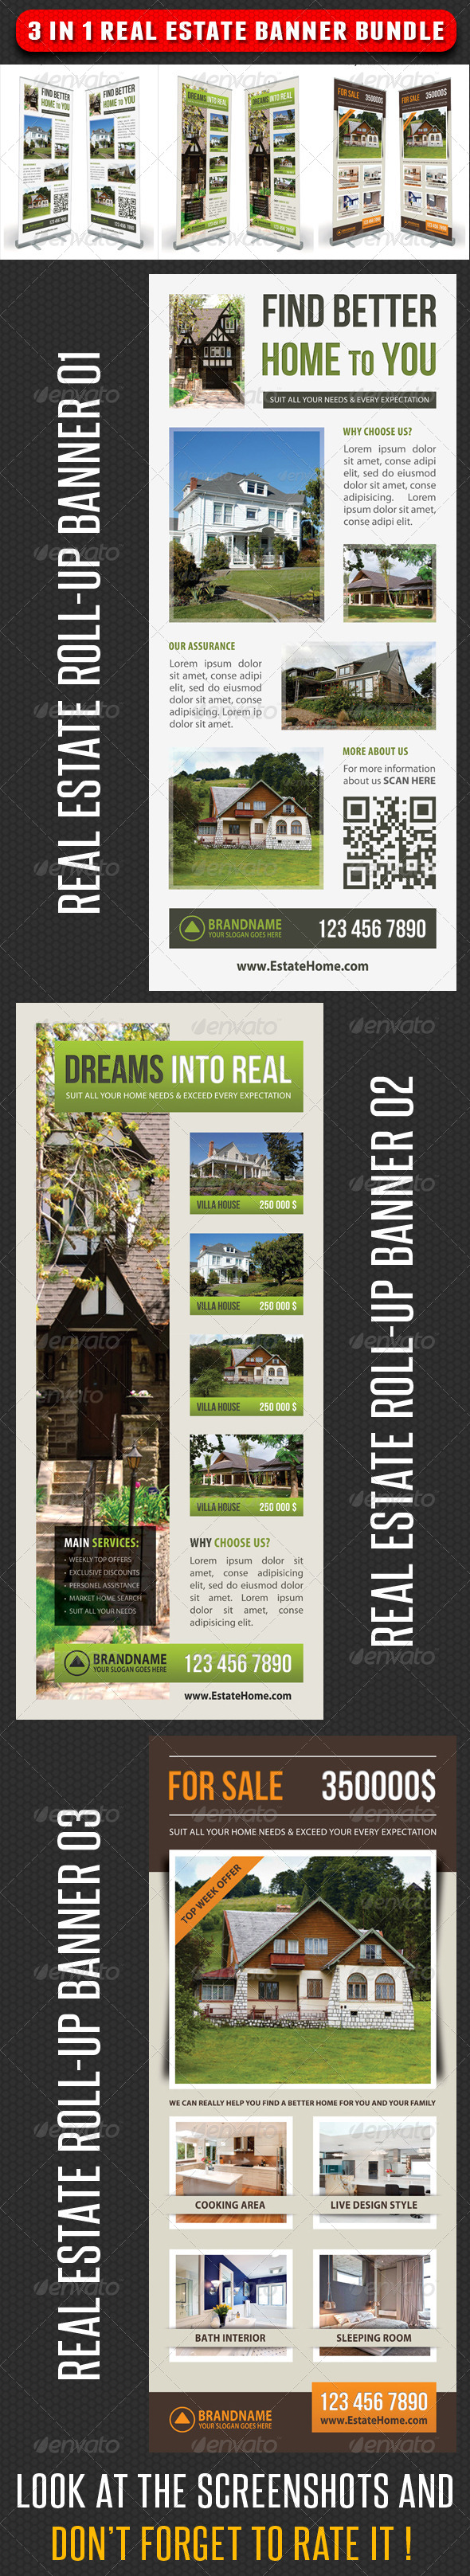 GraphicRiver 3 in 1 Real Estate Banner Bundle 04 7346594